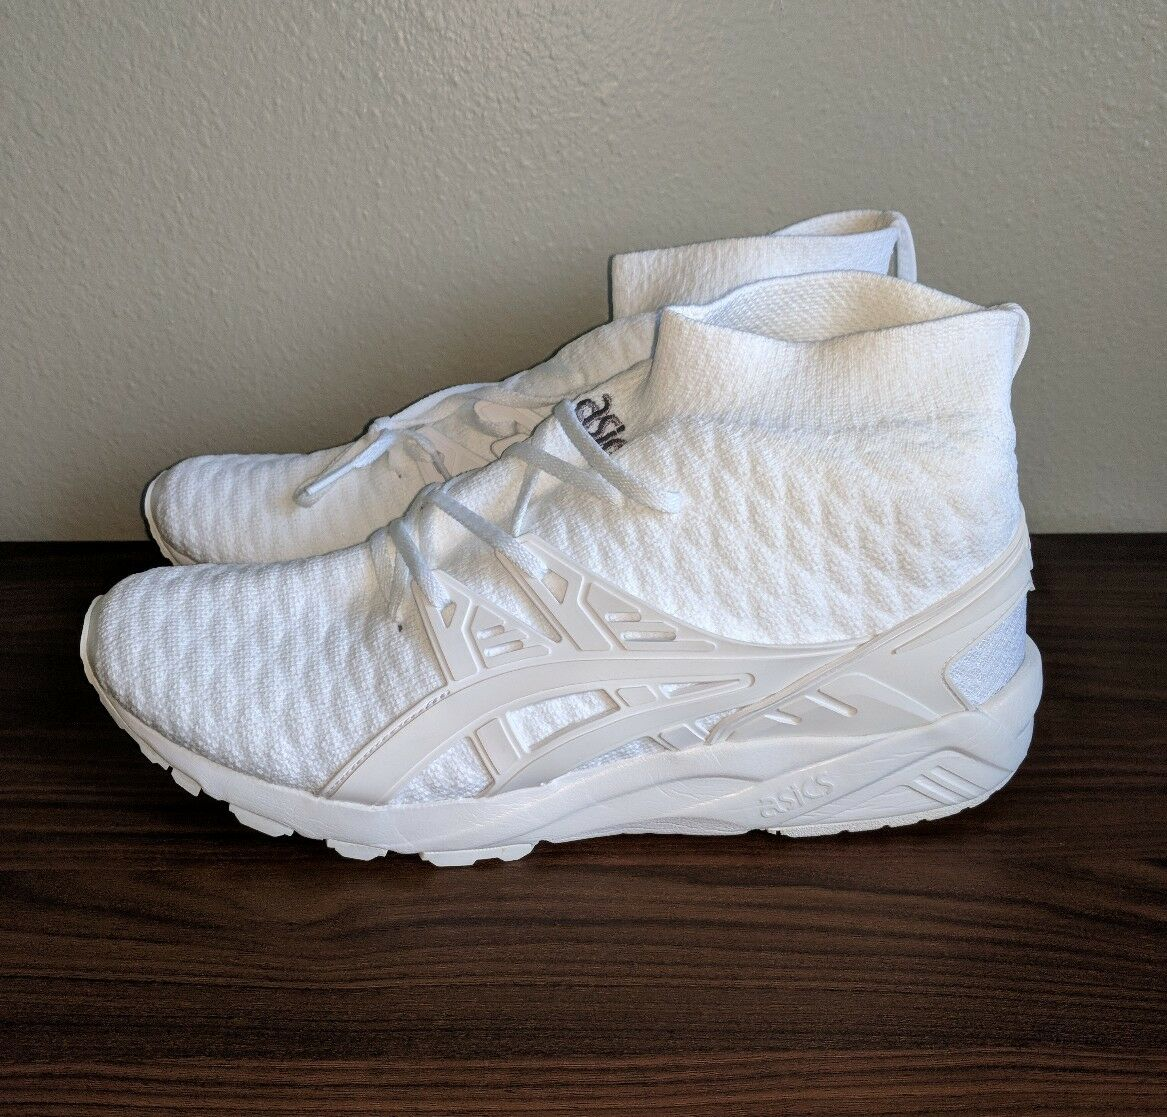 Asics Gel Kayano Trainer Knit MT White H7P4N 0101 Sz 10.5